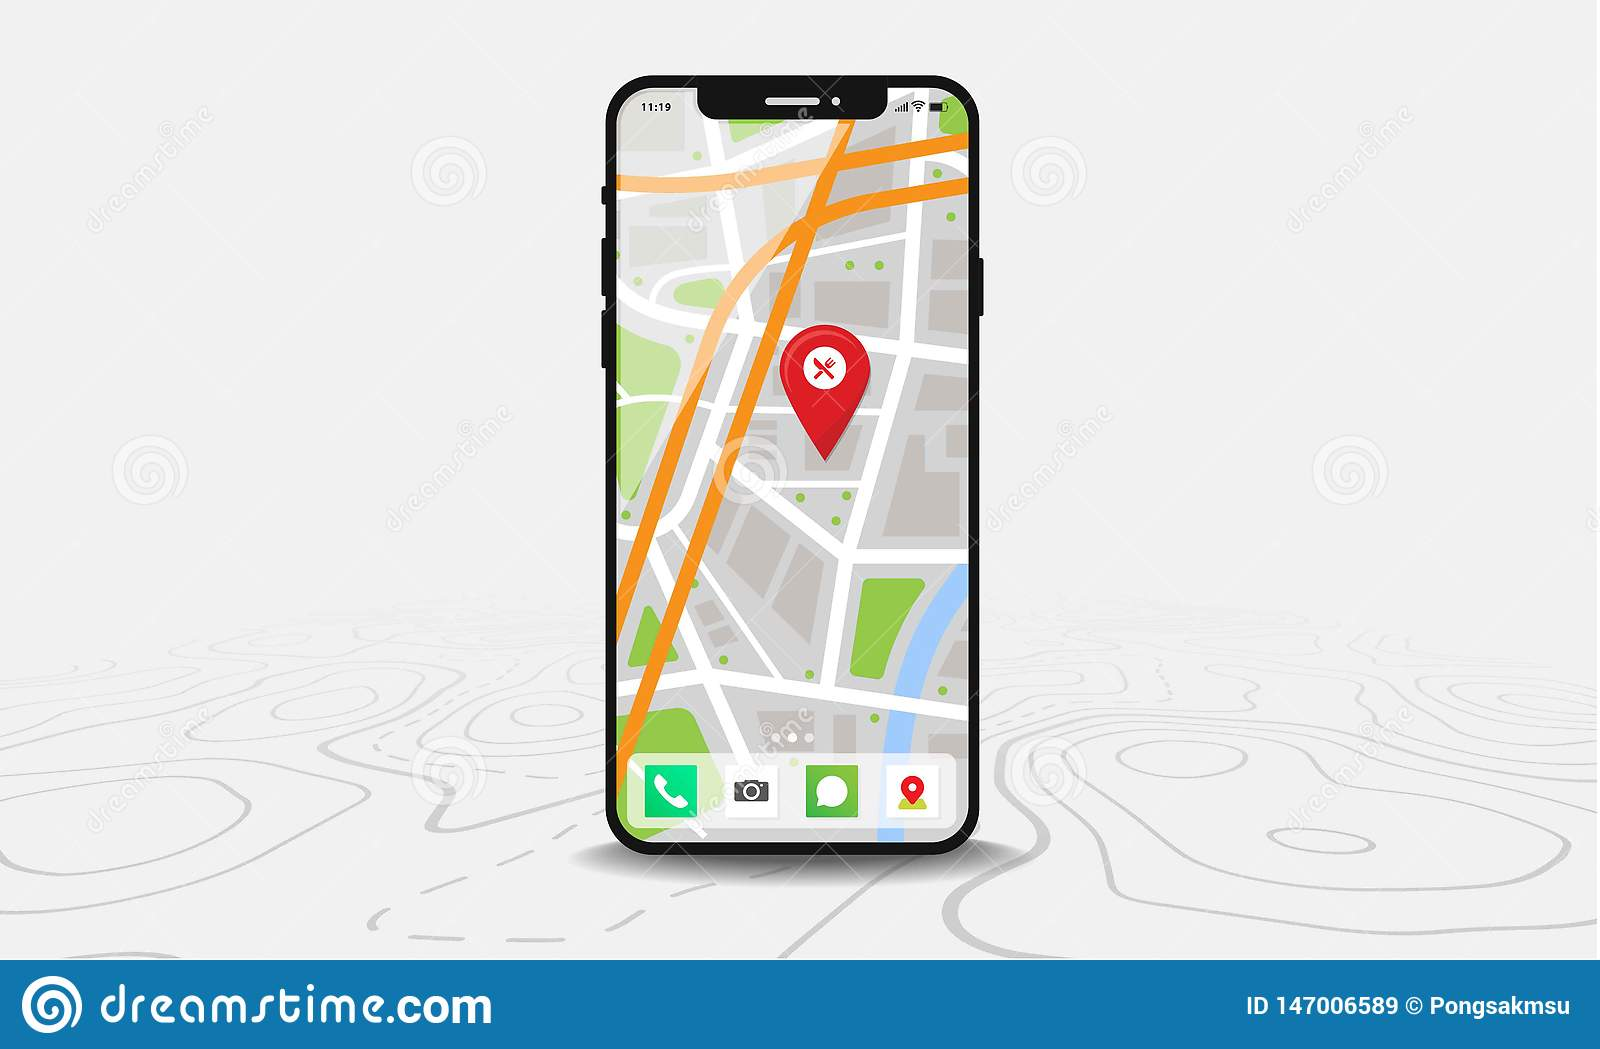 Smartphone with map and red pinpoint on screen, isolated on line maps background.